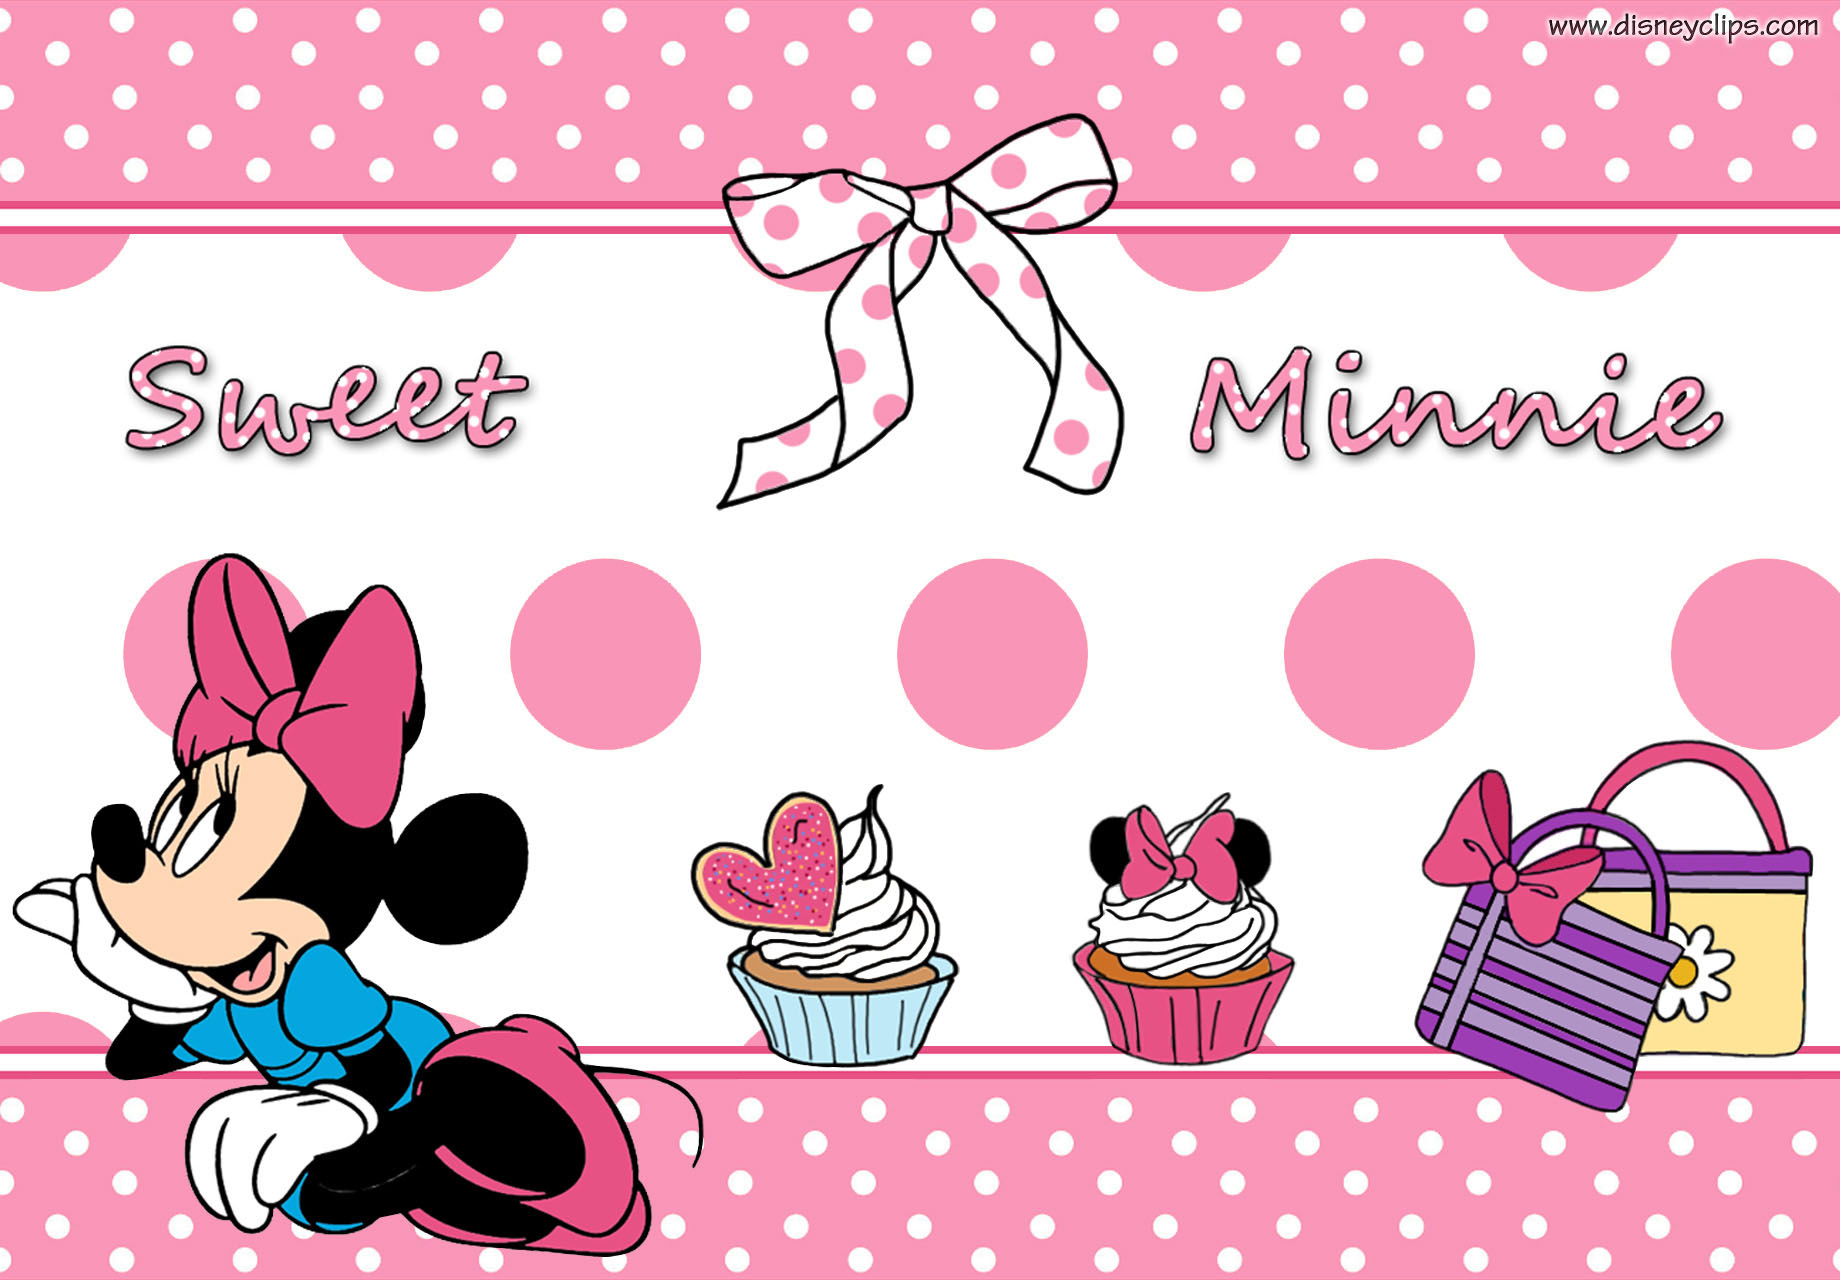 Wallpaper Minnie Mouse